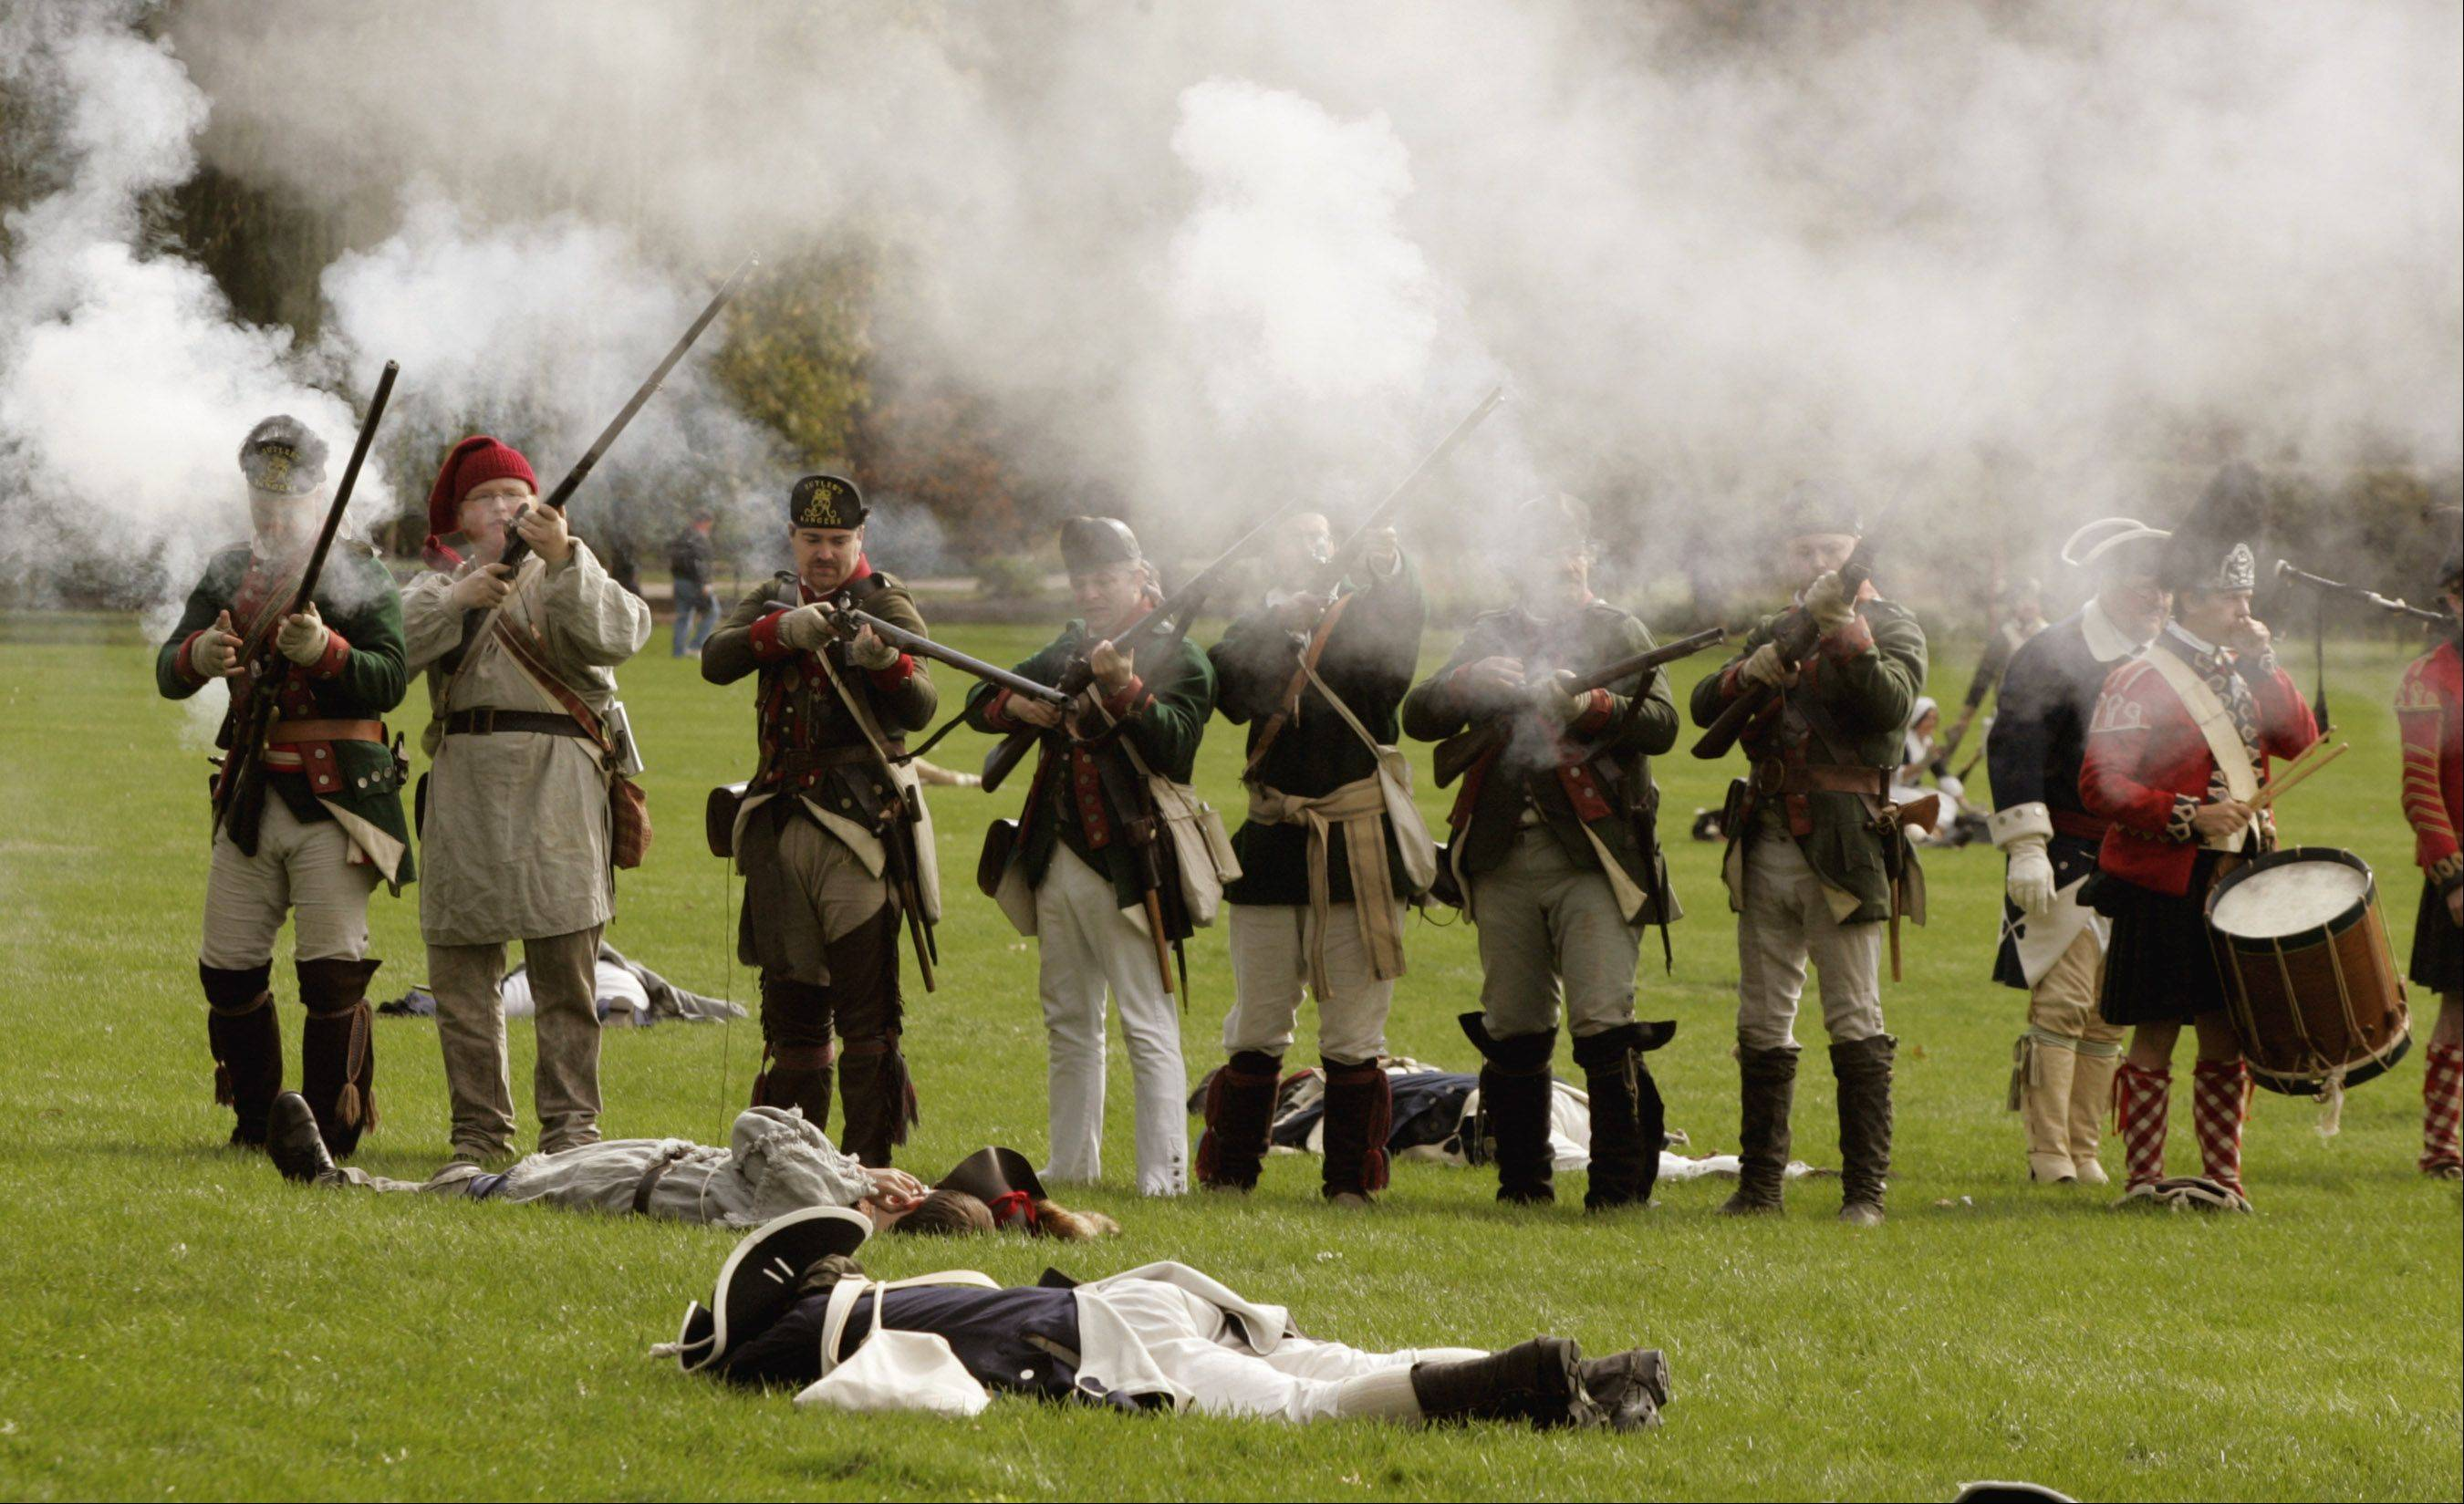 The battles are some of the most popular parts of the Revolutionary War Re-enactment that takes place this weekend at Cantigny Park in Wheaton.